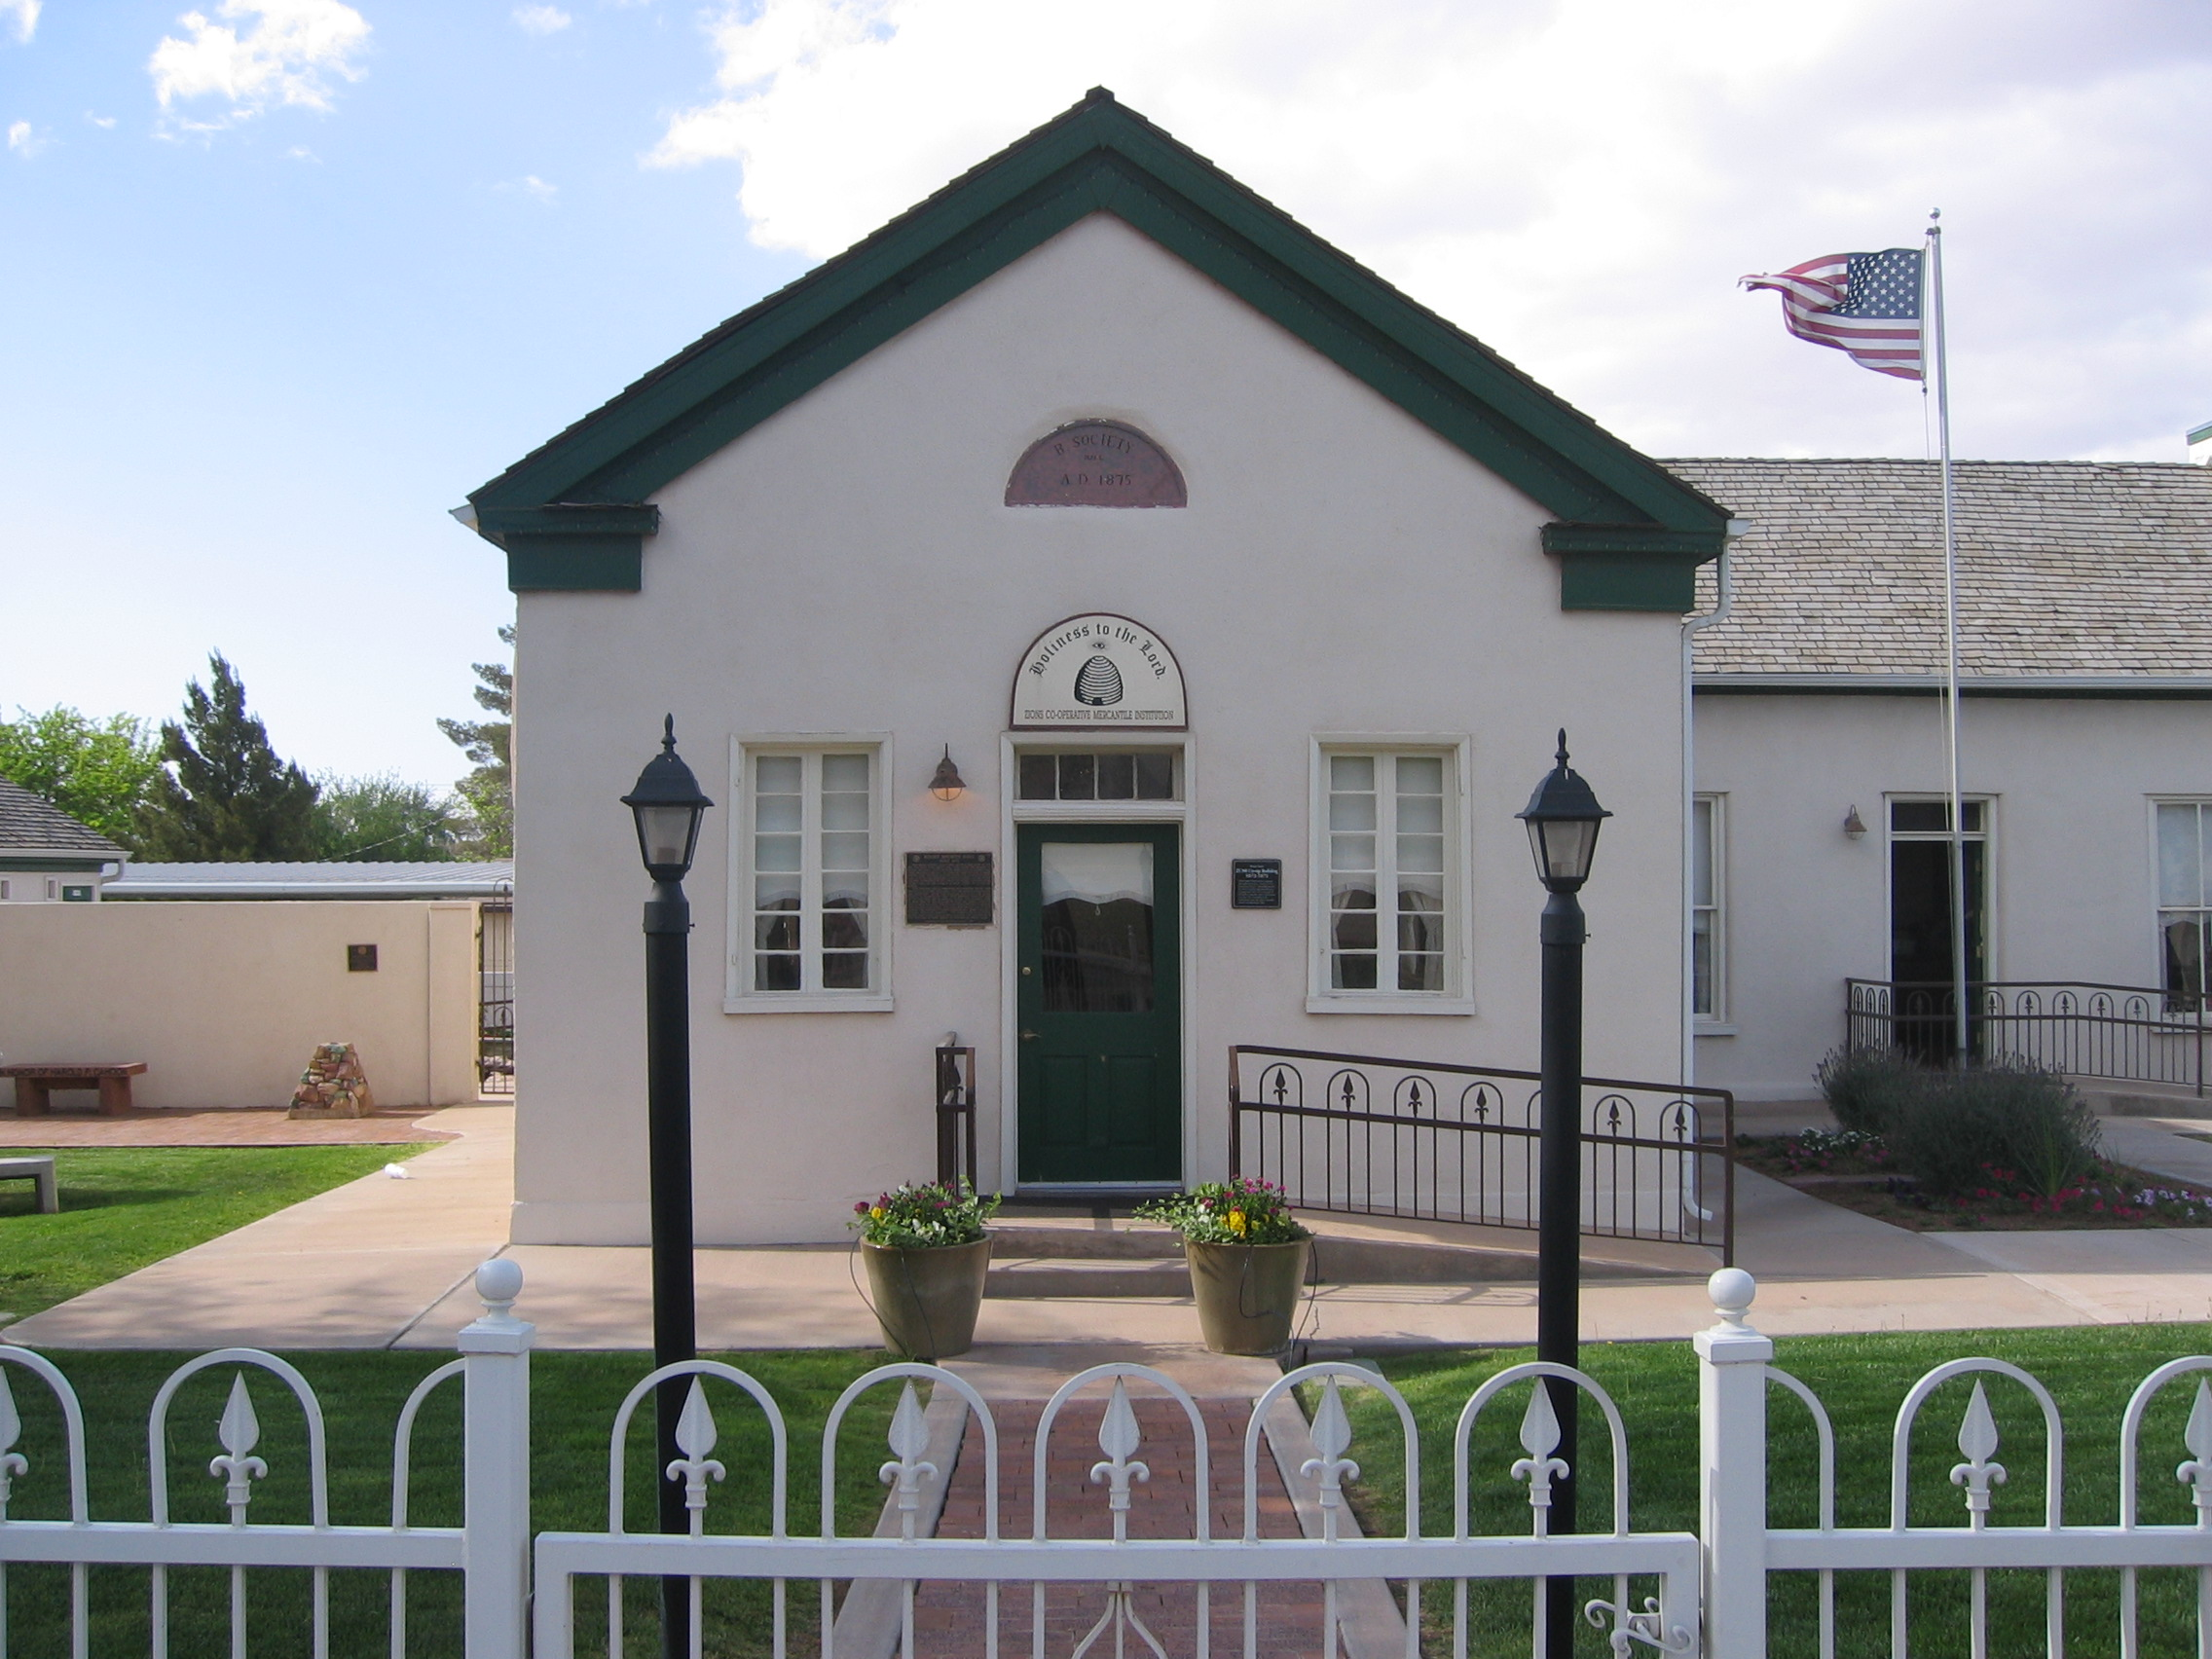 Front view of the Washington Relief Society house